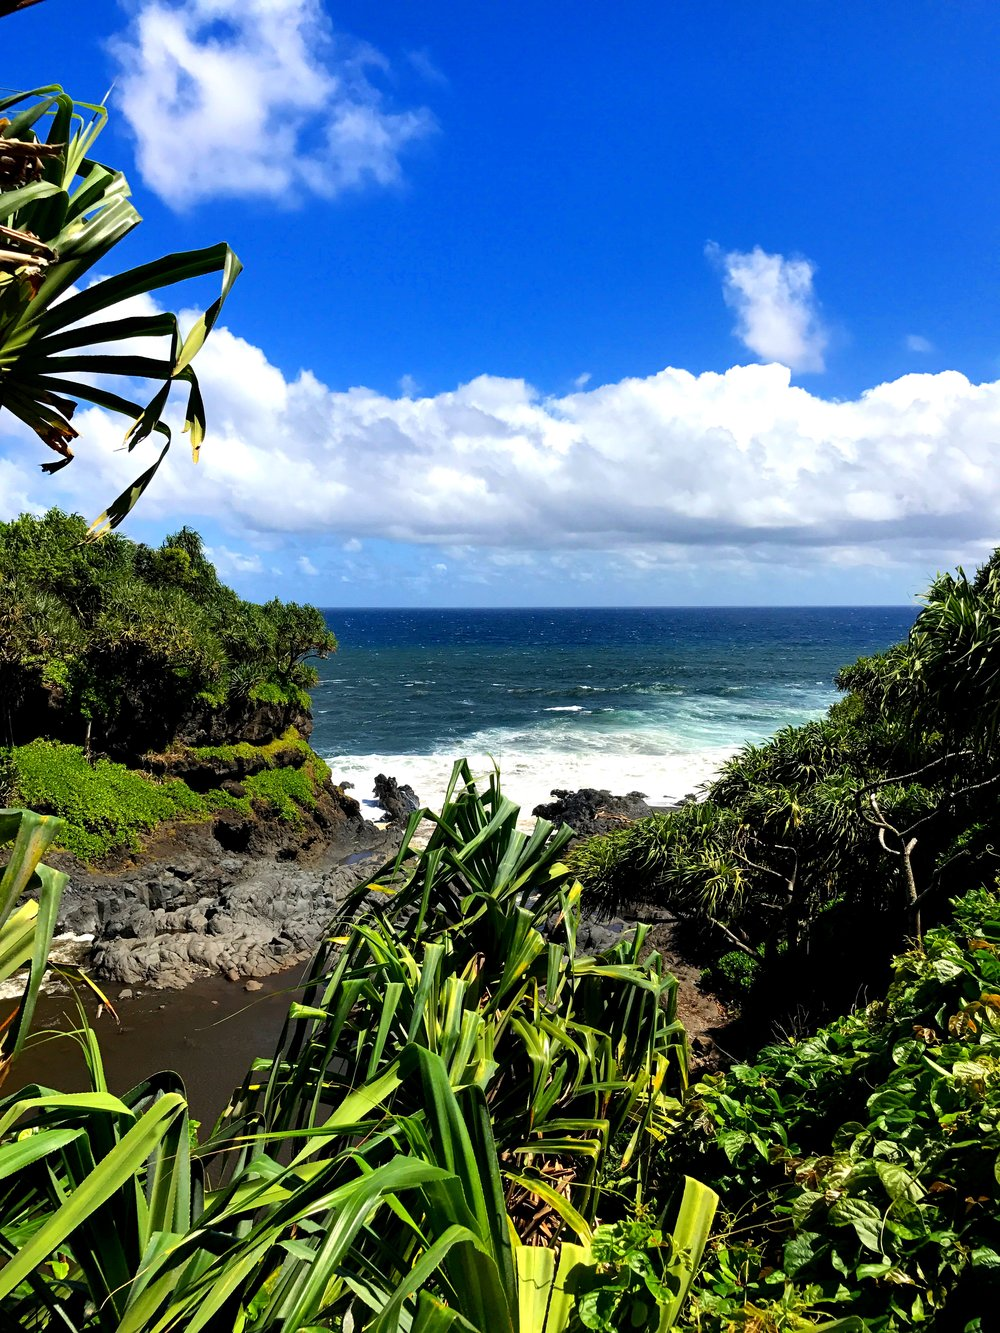 Road to Hana - Maui Hawaii